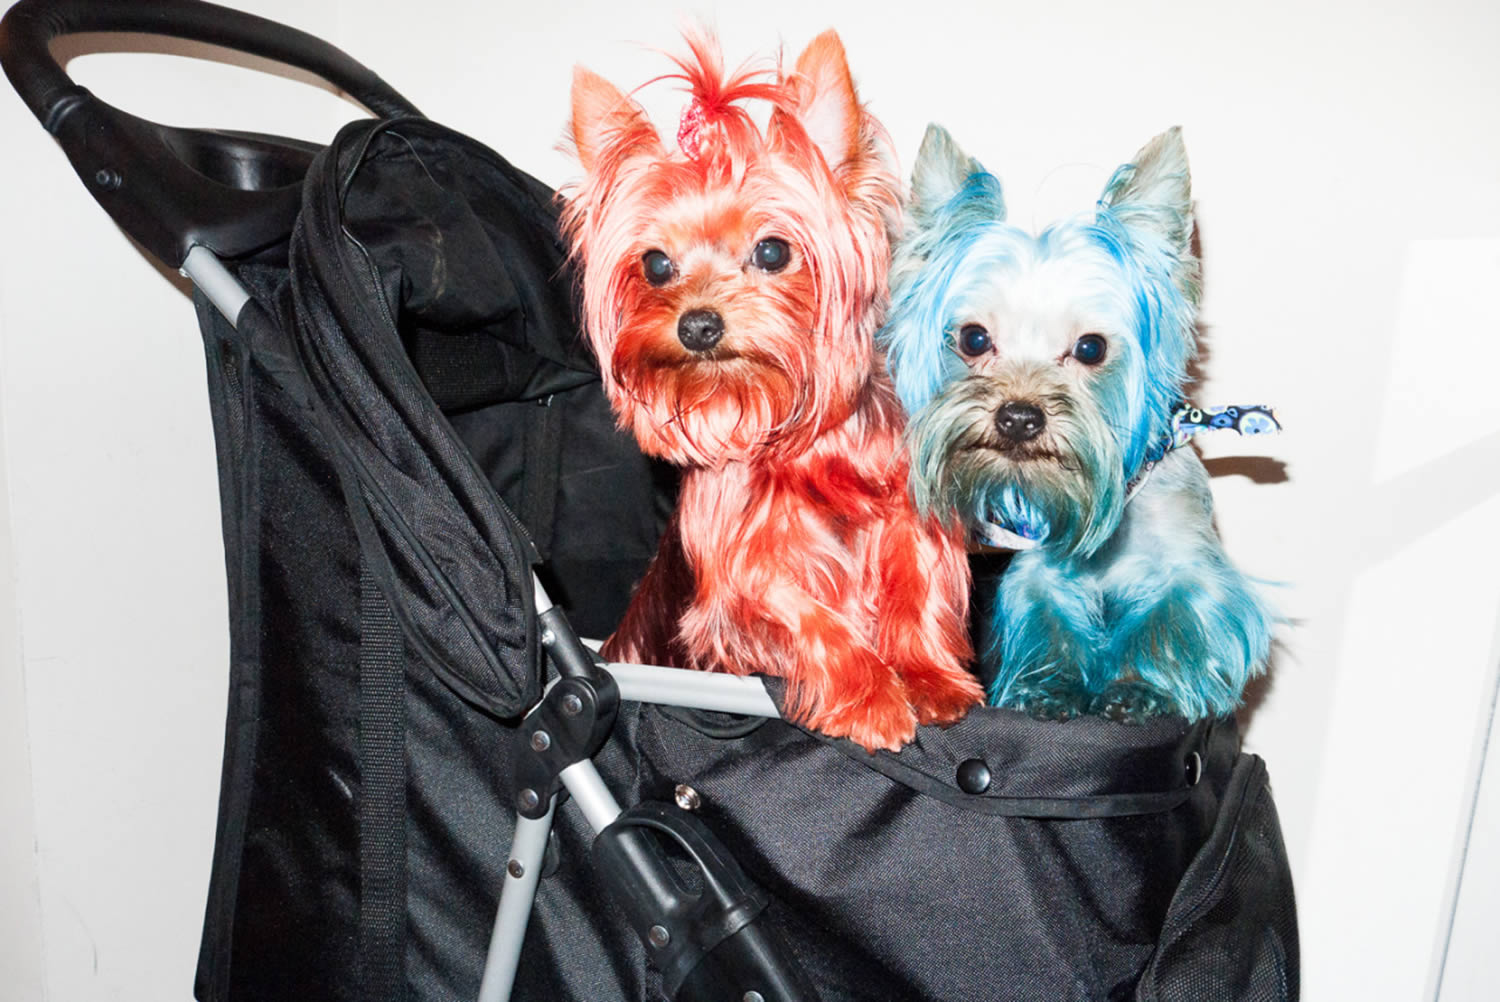 terriers (dogs) dyed in pink and blue